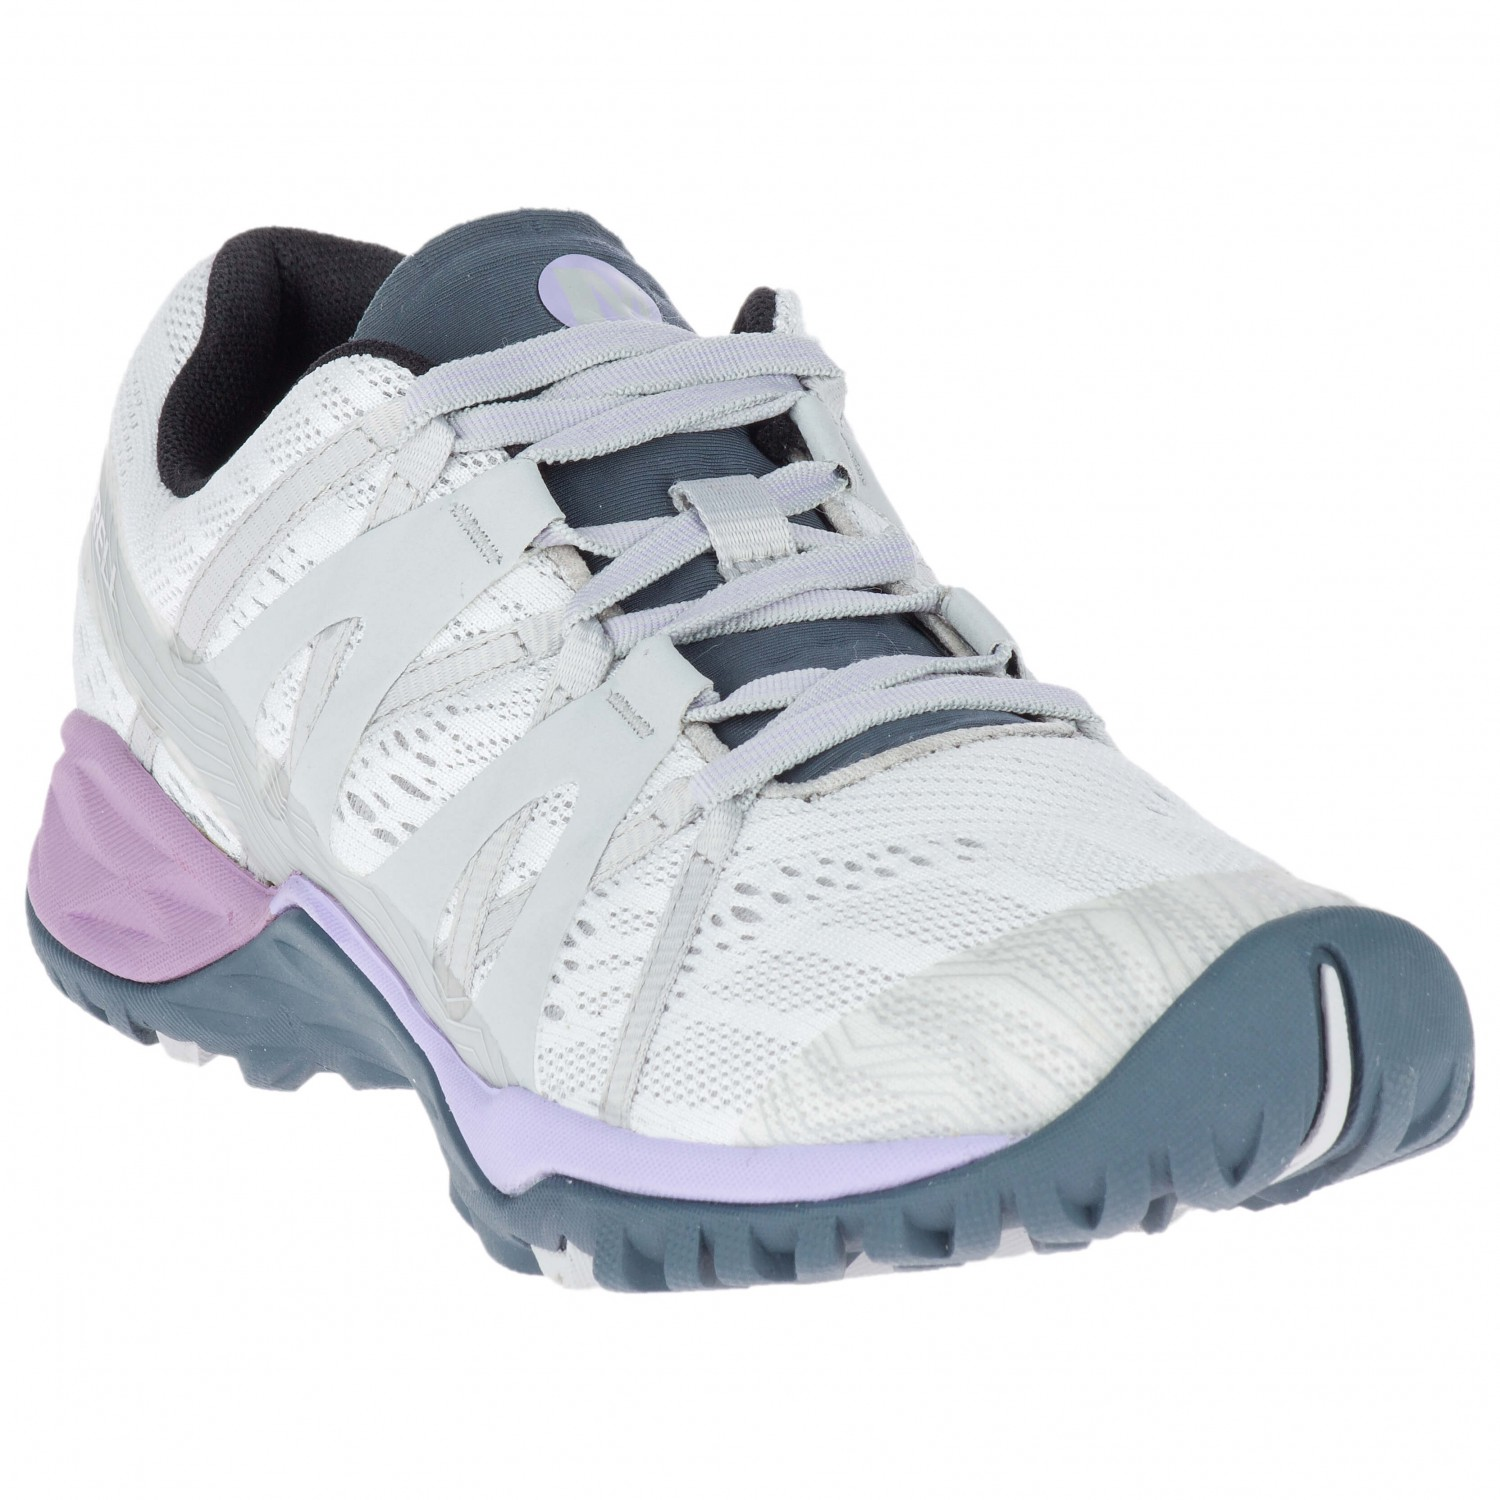 c84f0c7aa47 Merrell Siren Hex Q2 E-Mesh - Multisport shoes Women s